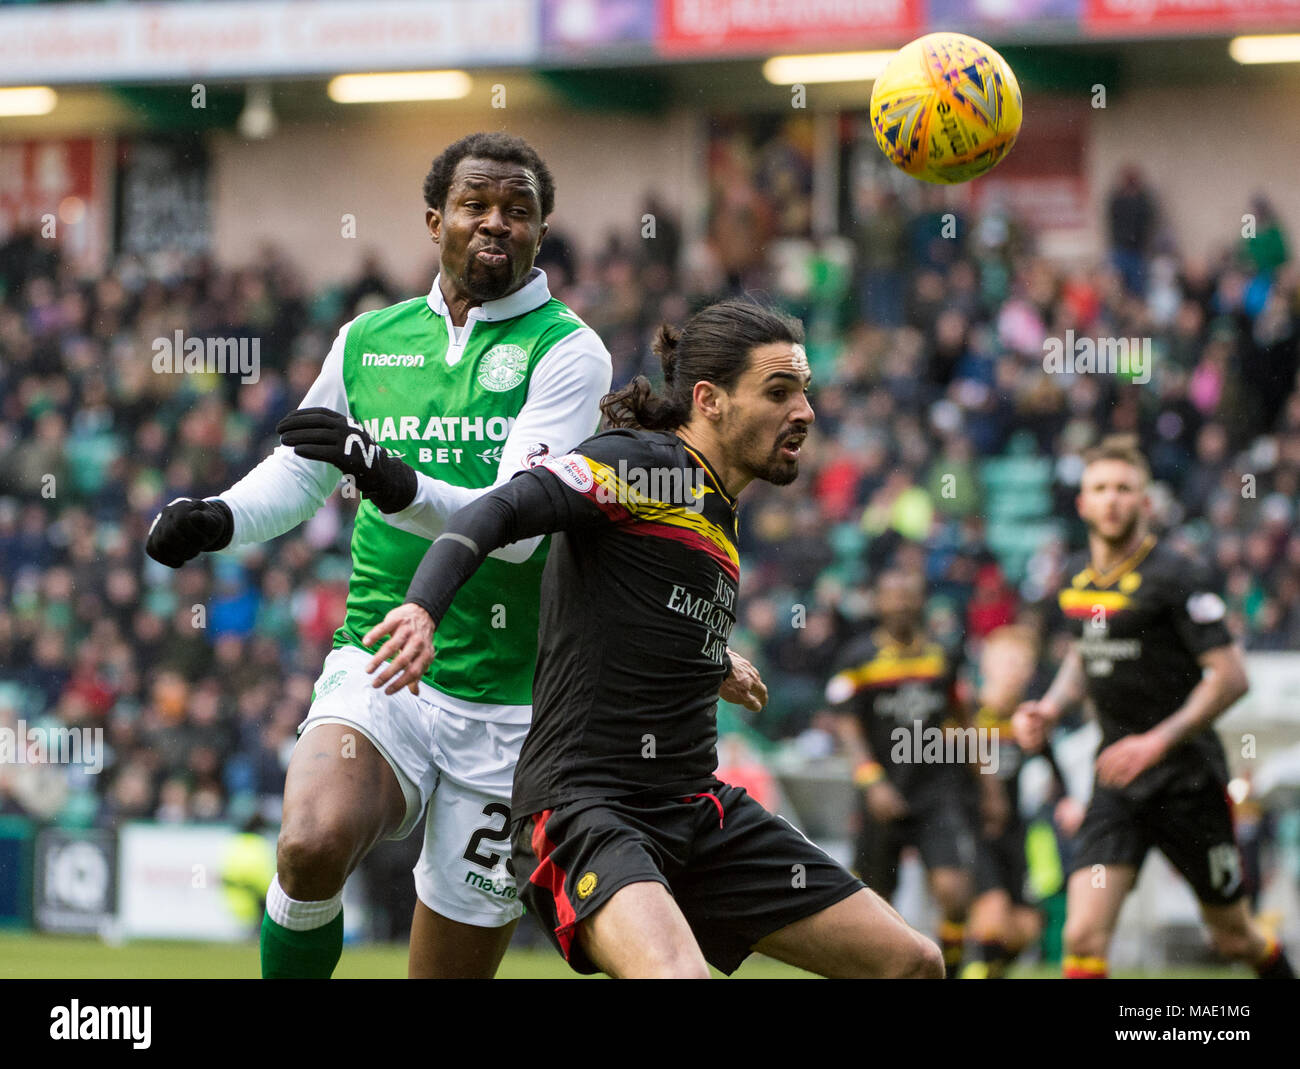 Scottish Premiereship, Hibernian v Partick Thistle, Edinburgh, Midlothian, UK. 31,03, 2018. Pic shows:  Hibs defender, Efe Ambrose, beats Partick Thistle midfielder Ryan Edwards to the ball during the second half of the Scottish Premiereship clash between Hibernian and Partick Thistle at Easter Road Stadium, Edinburgh.  Credit: Alamy/Ian Jacobs - Stock Image